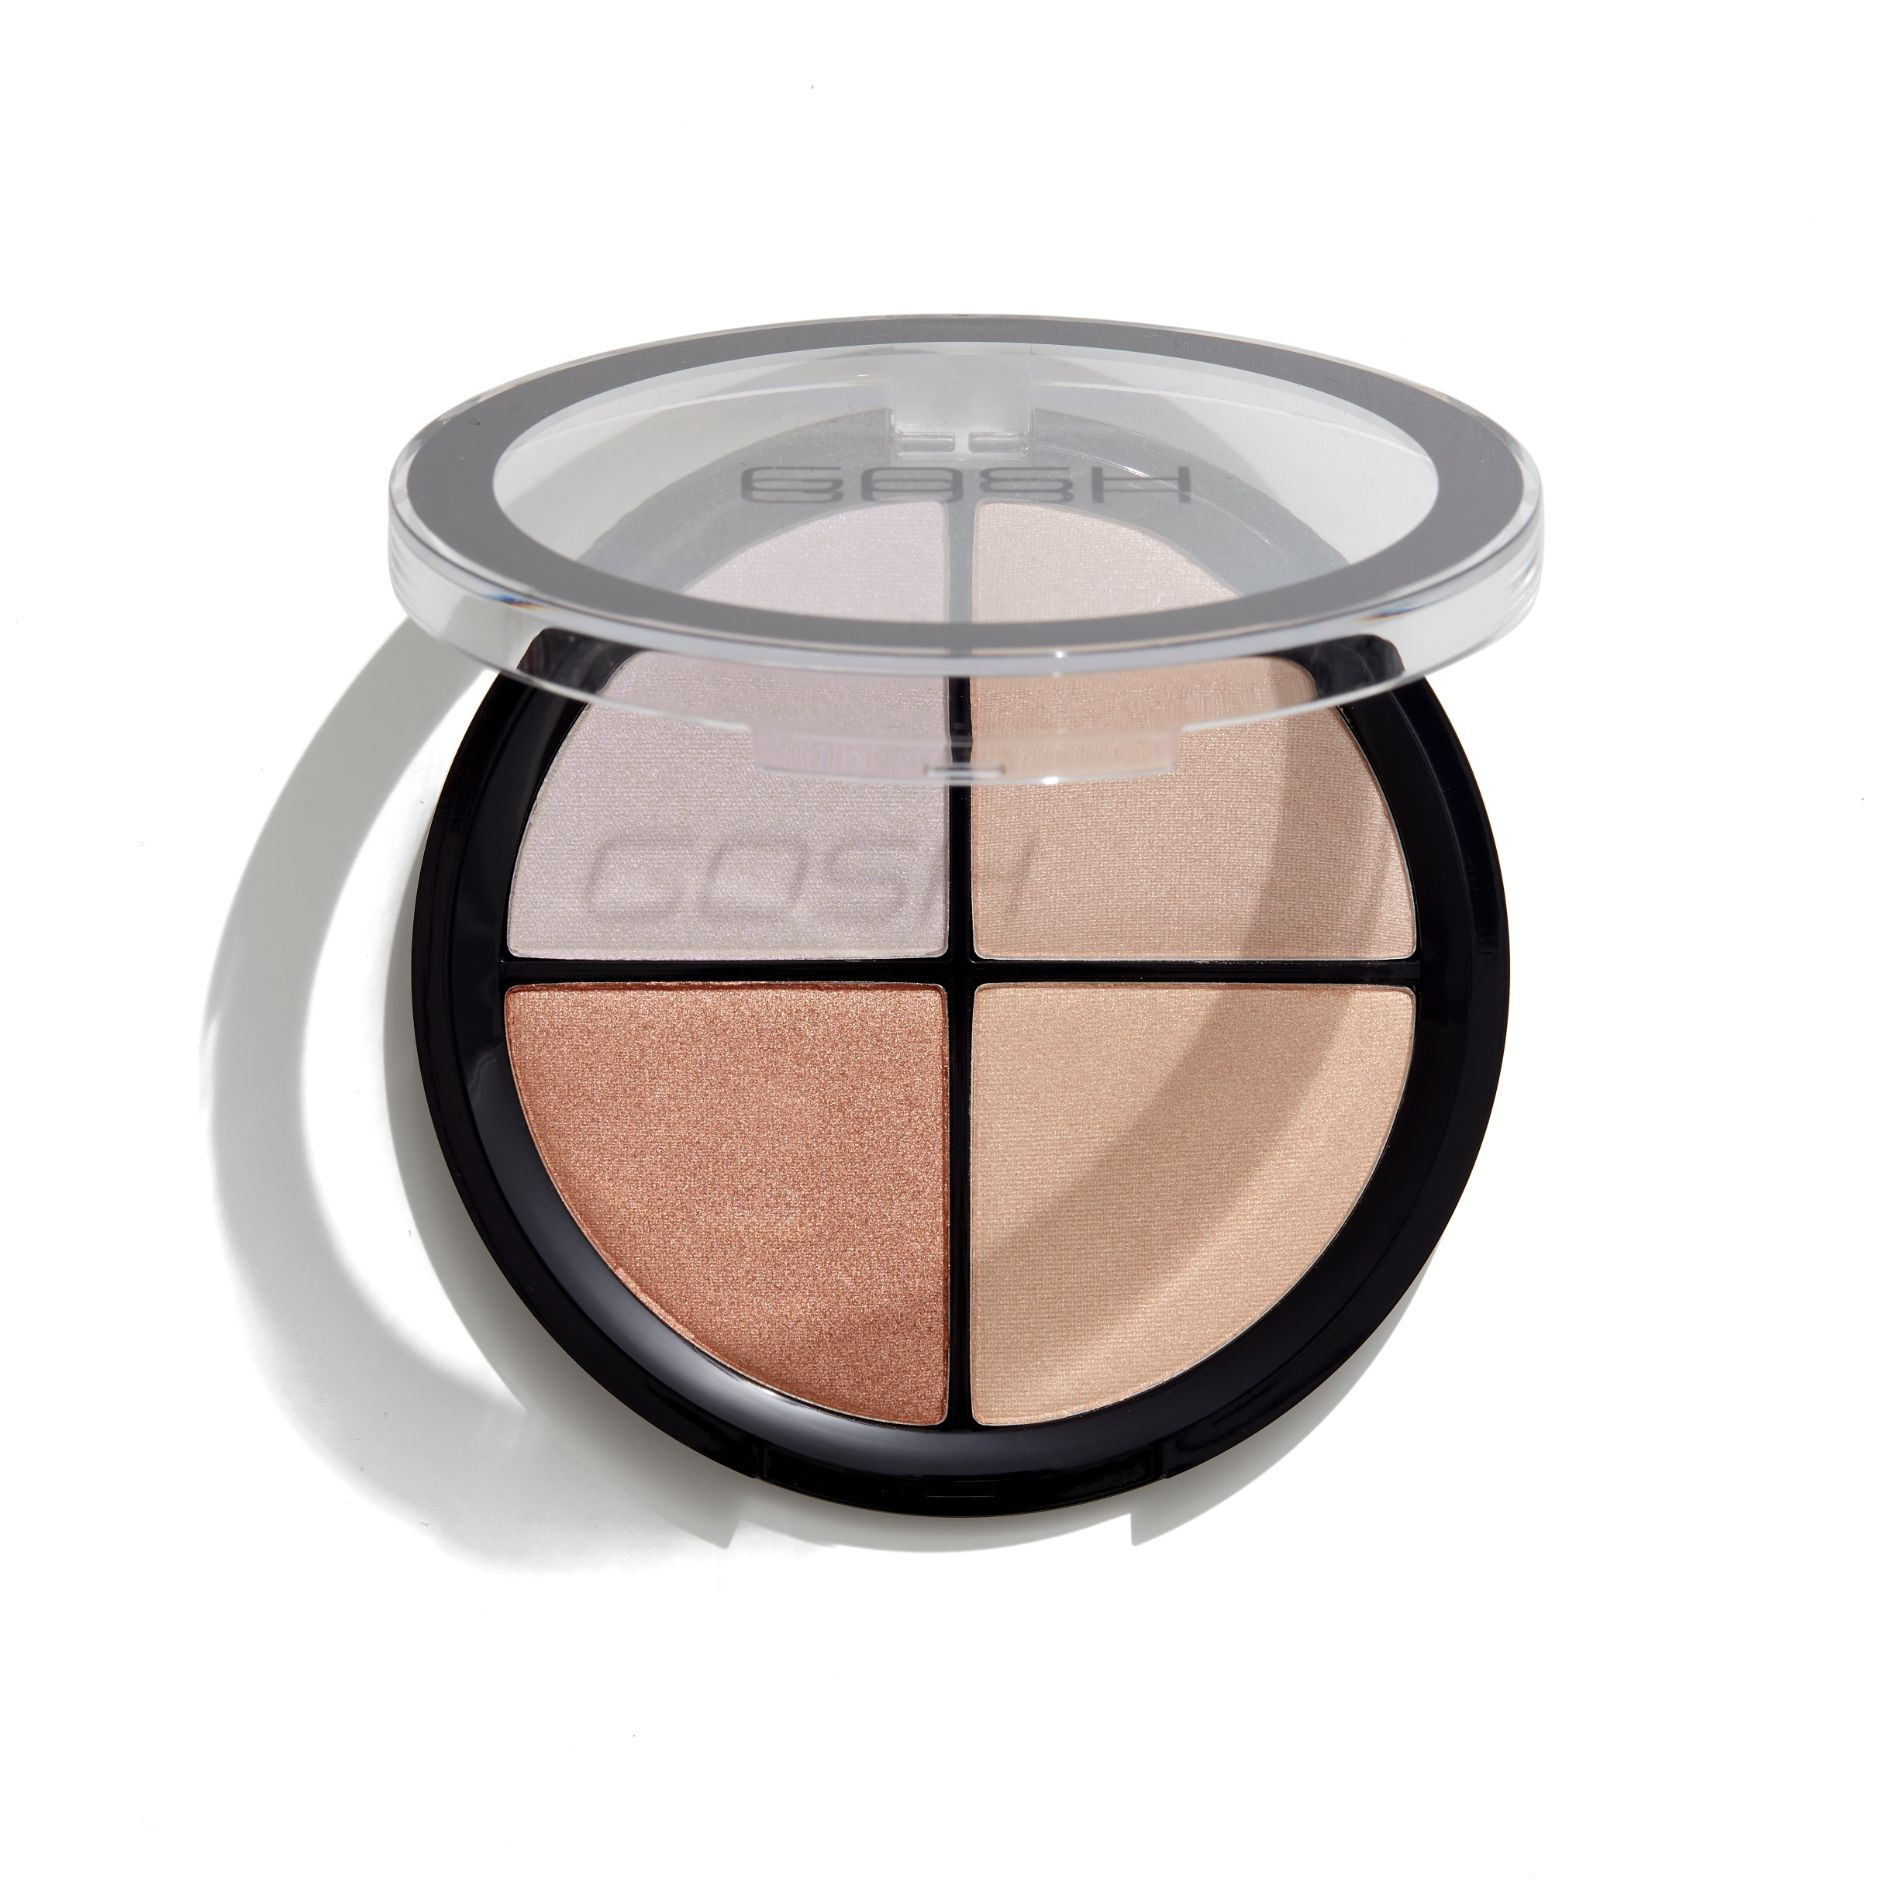 Image of   GOSH GOSH Stroben Glow kit - 001 Highlight